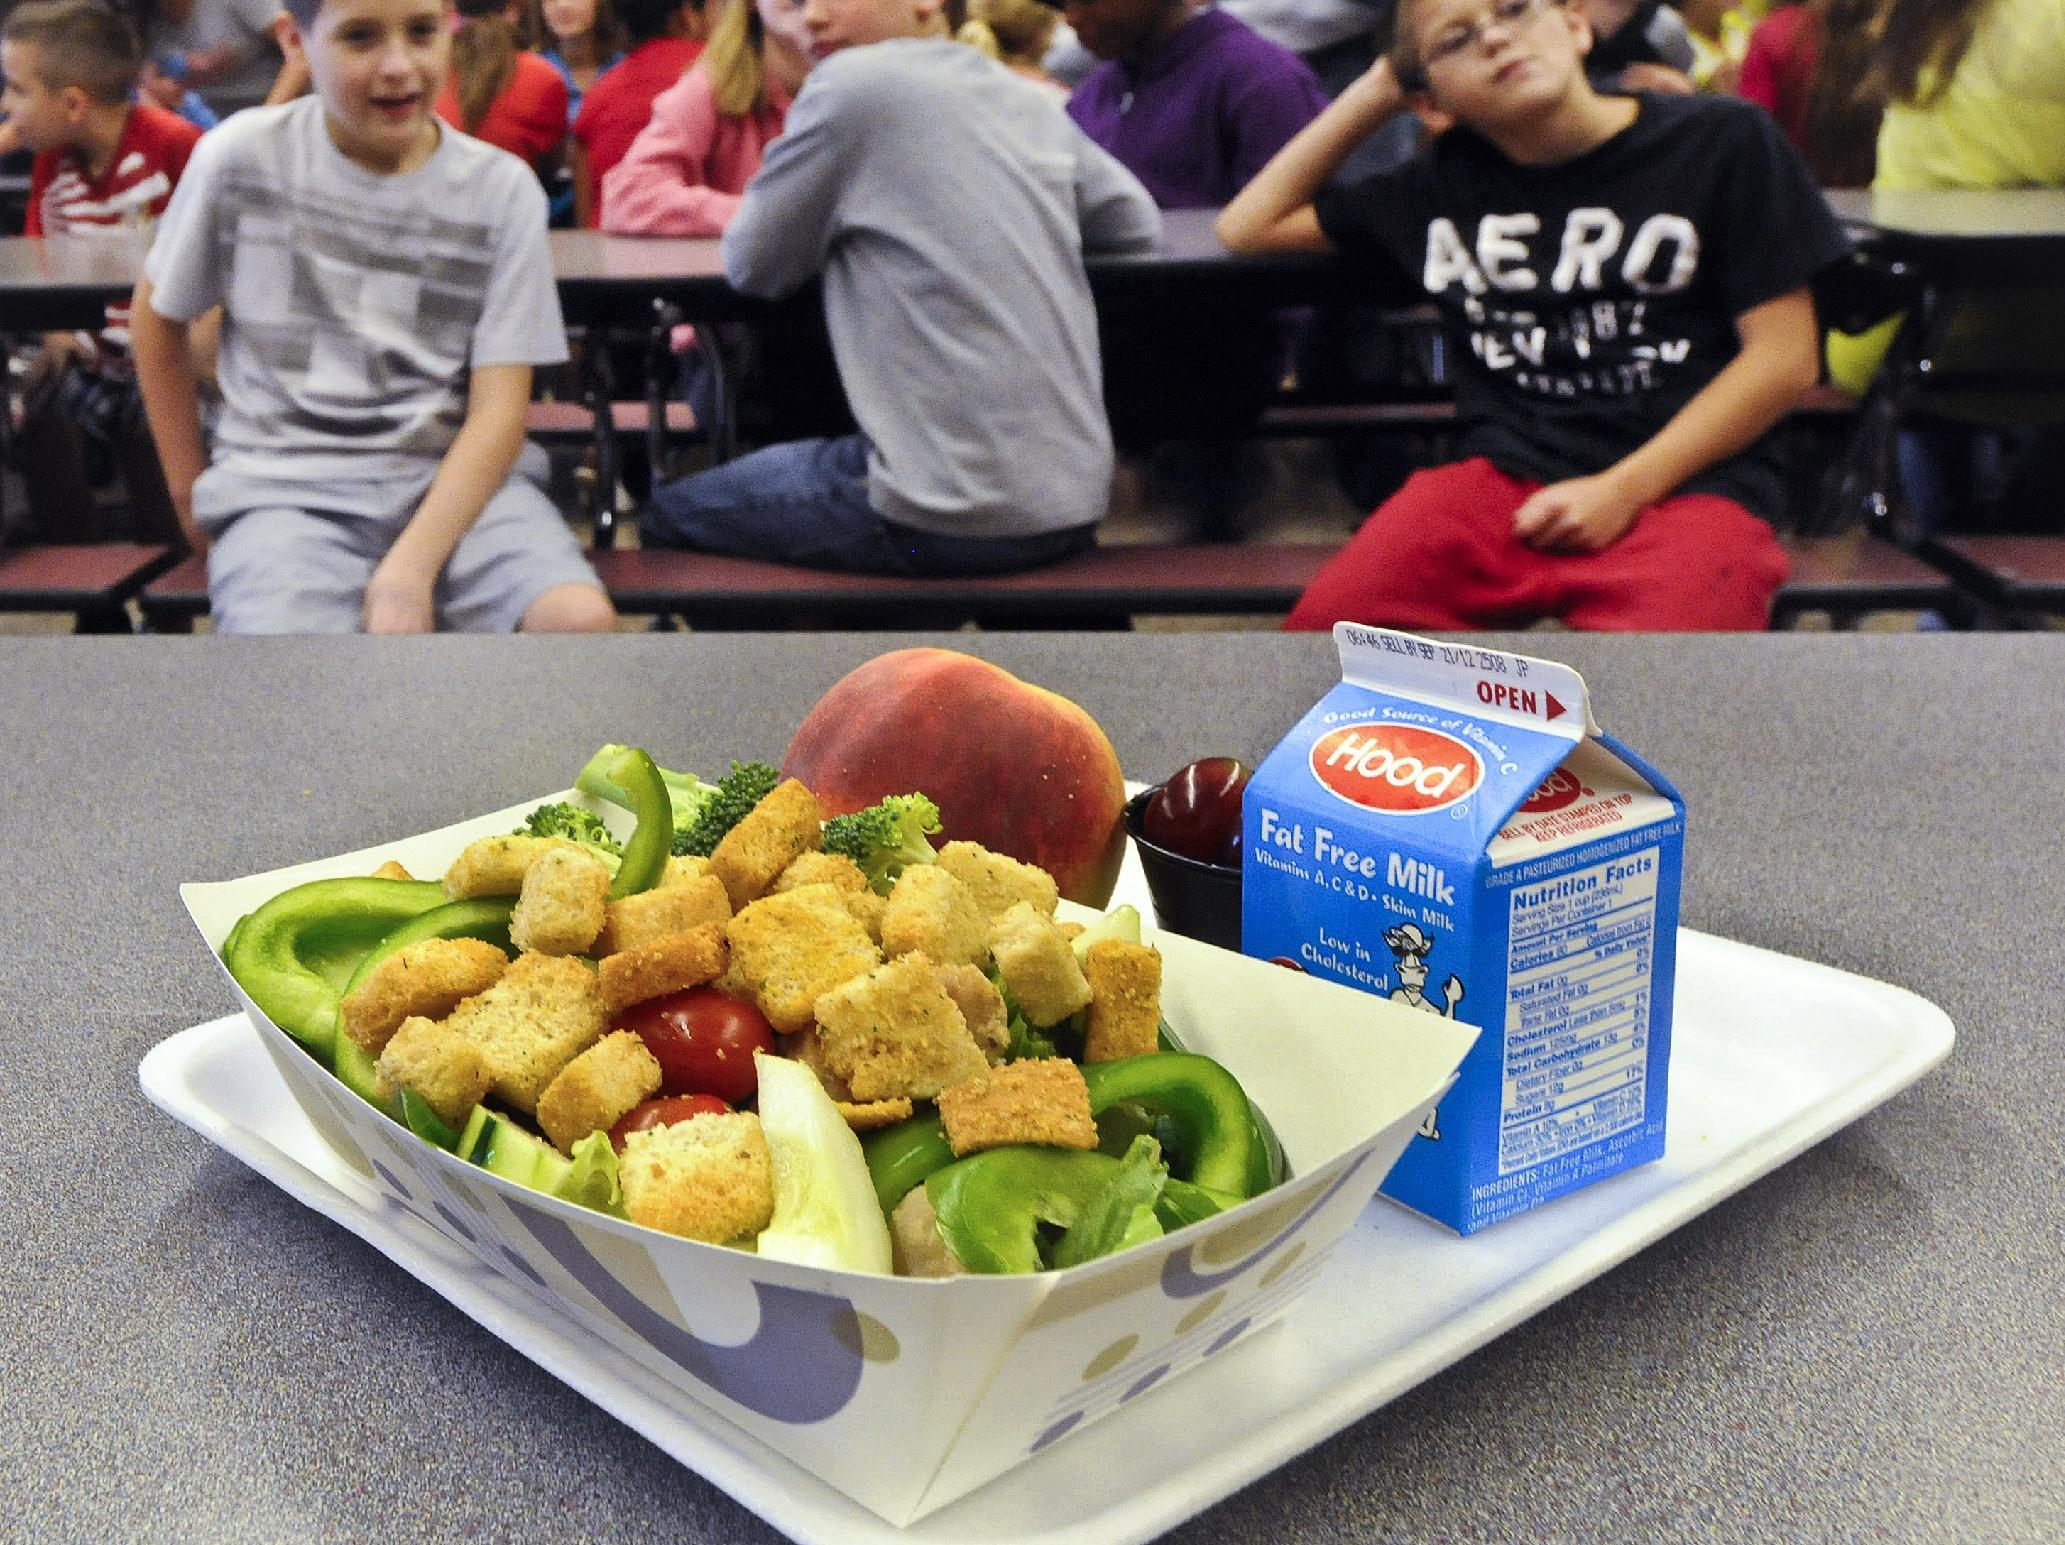 FILE - In this Tuesday, Sept. 11, 2012 file photo, a select healthy chicken salad school lunch, prepared under federal guidelines, sits on display at the cafeteria at Draper Middle School in Rotterdam, N.Y. After just one year, some schools across the nation are dropping out of what was touted as a healthier federal lunch program, complaining that so many students refused the meals packed with whole grains, fruits and vegetables that their cafeterias were losing money. (AP Photo/Hans Pennink, File)